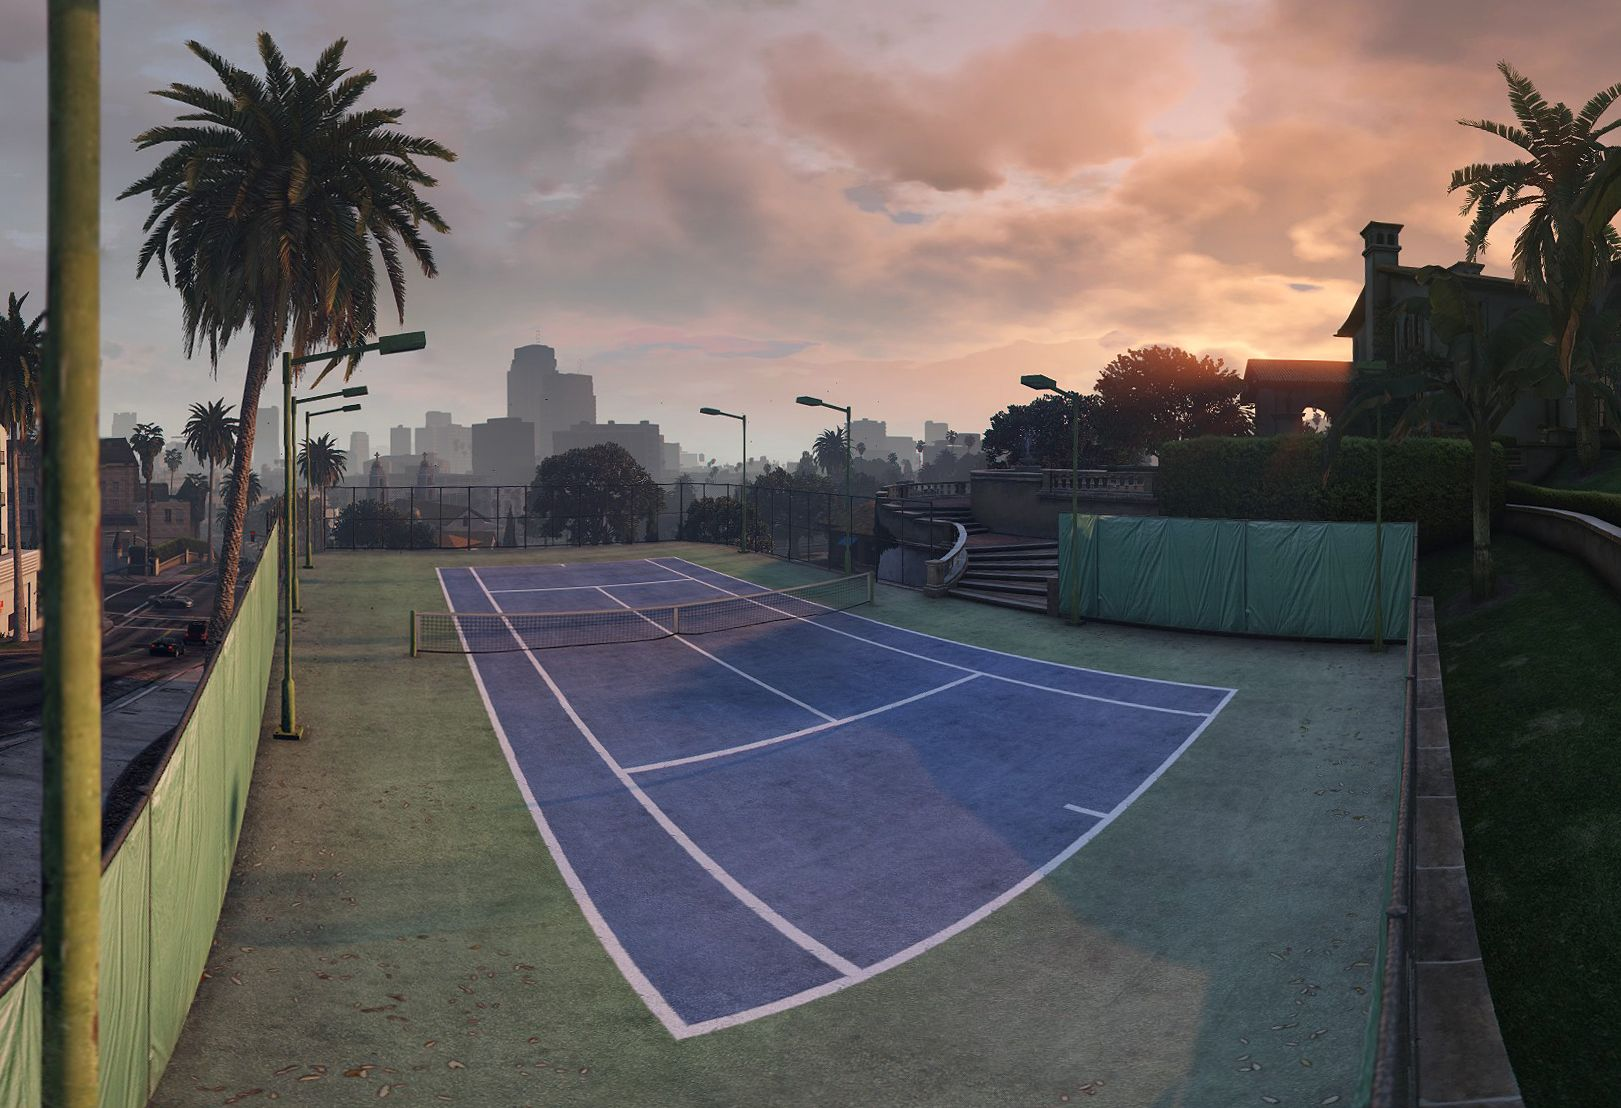 Rockford Drive Private Tennis Court High Res Pano Private Tennis Court Tennis Court Tennis